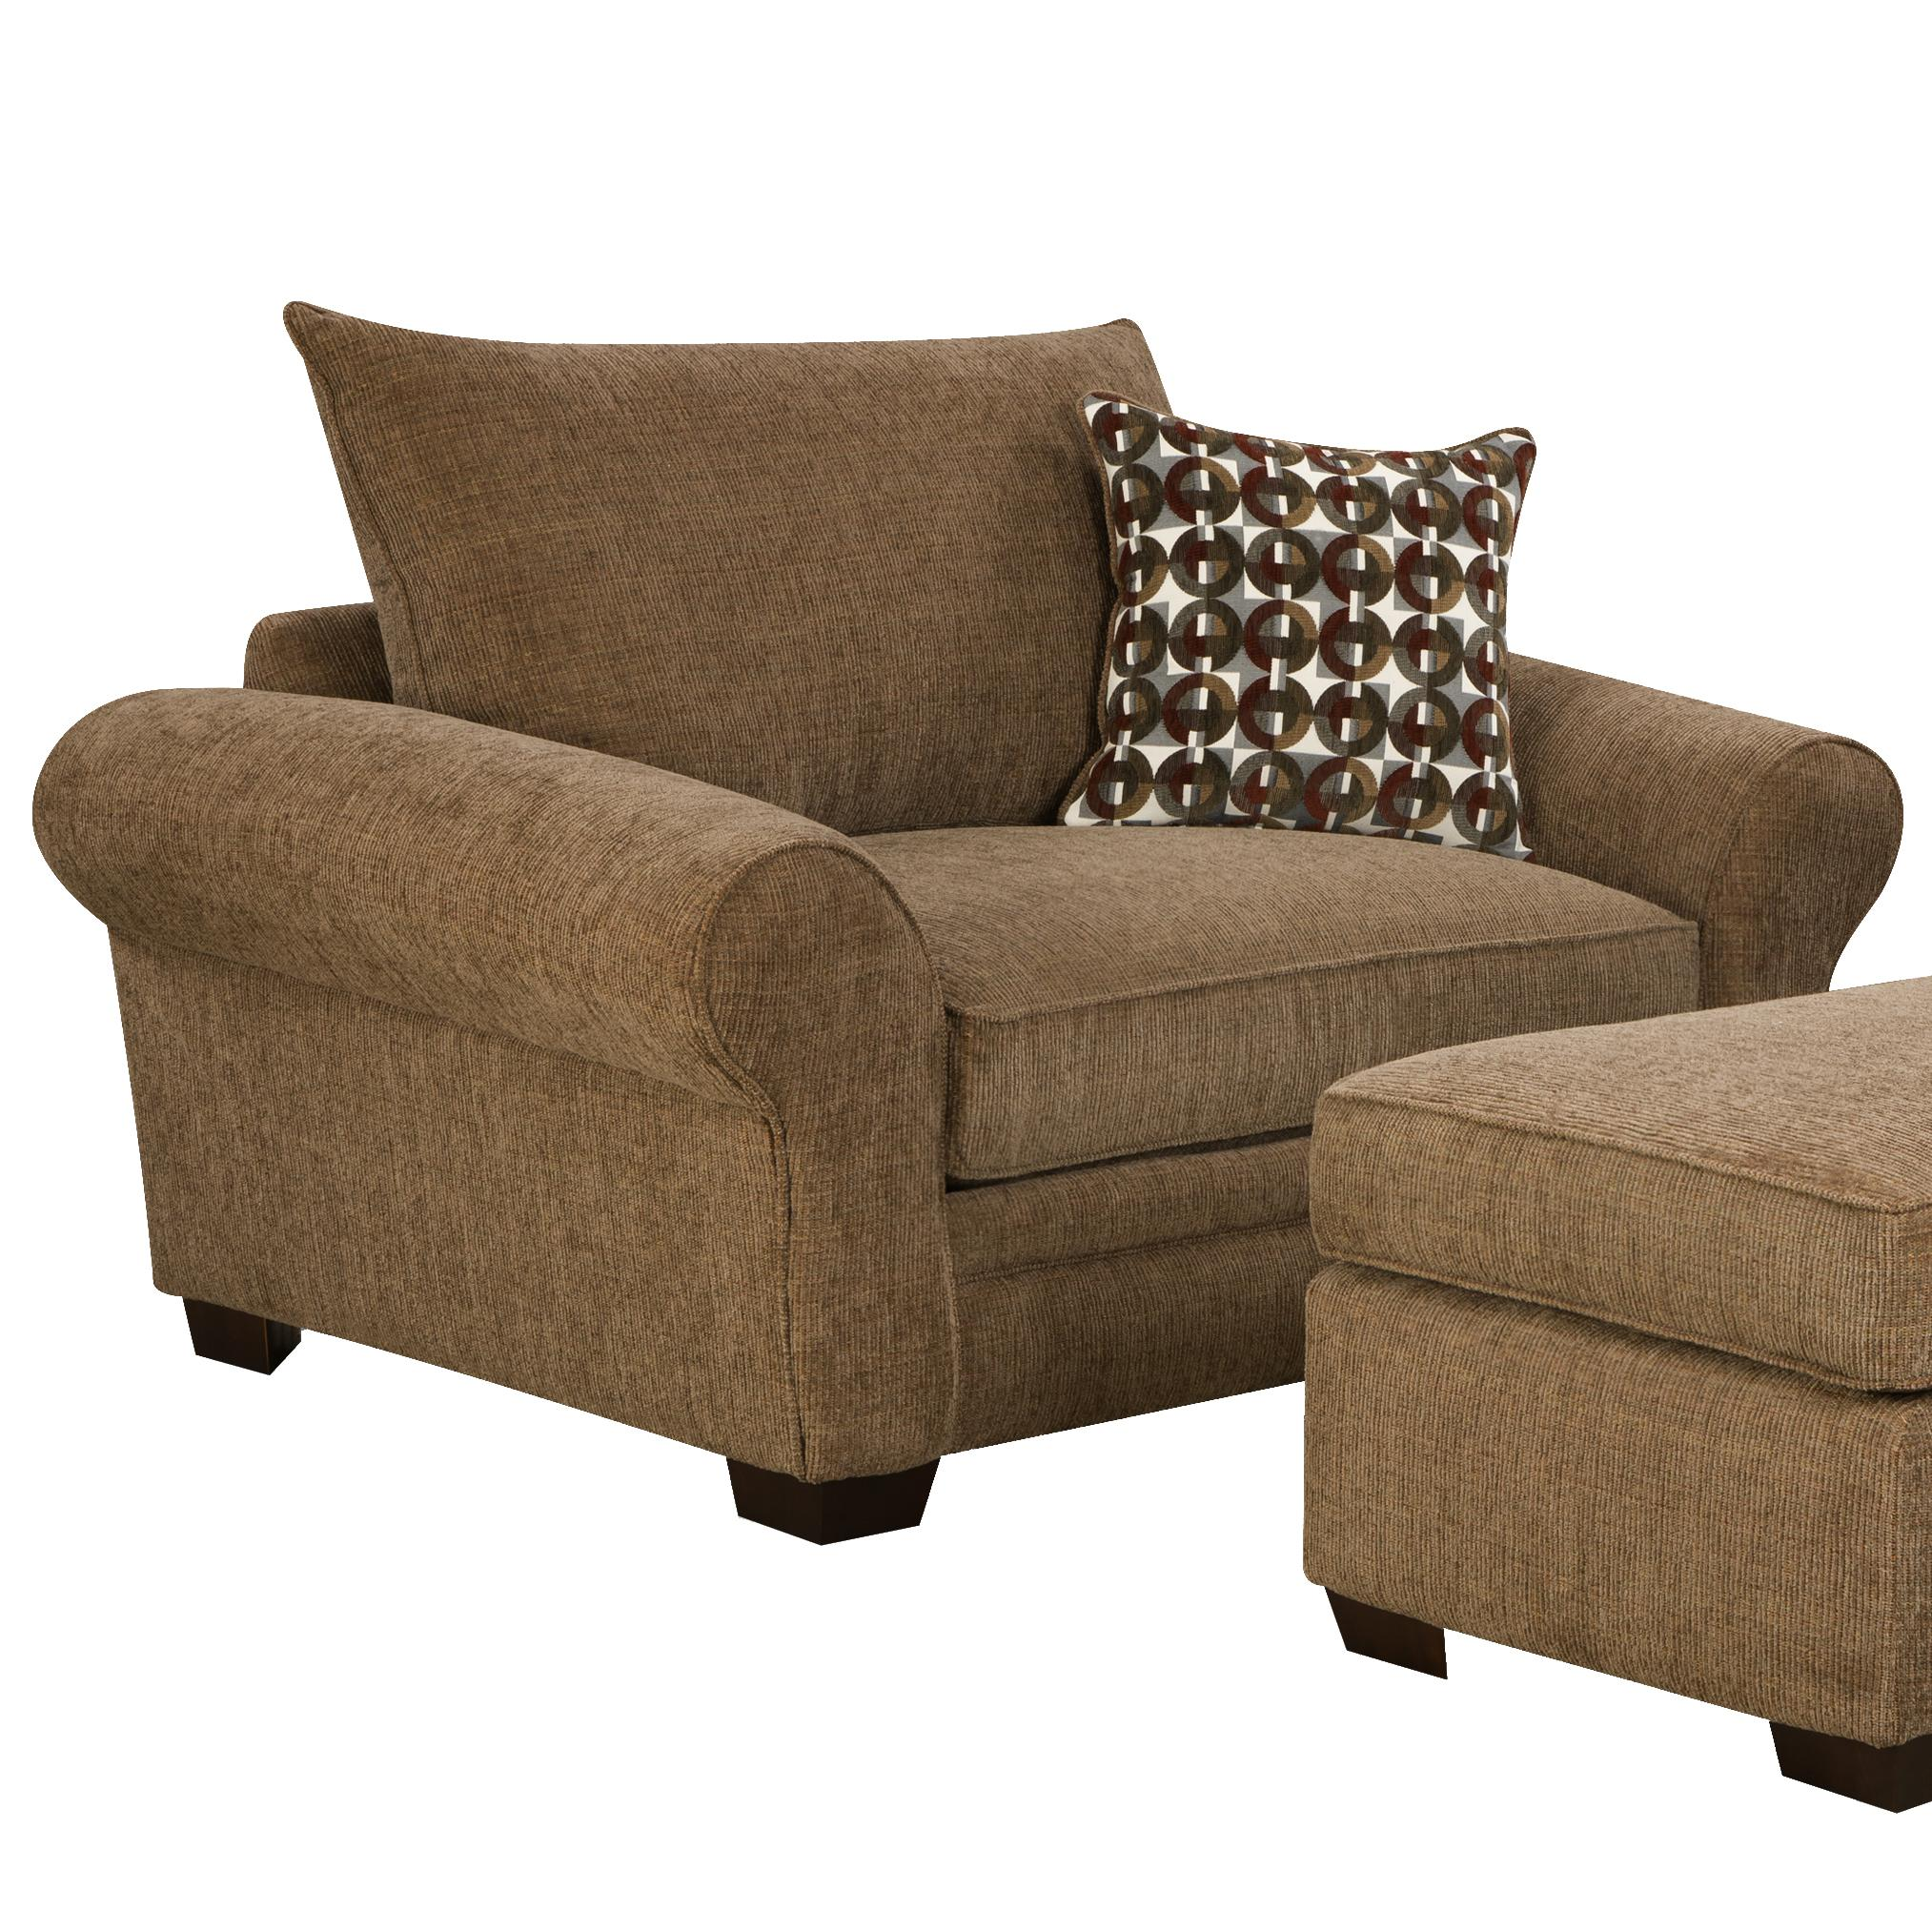 Extra Wide Living Room Chairs